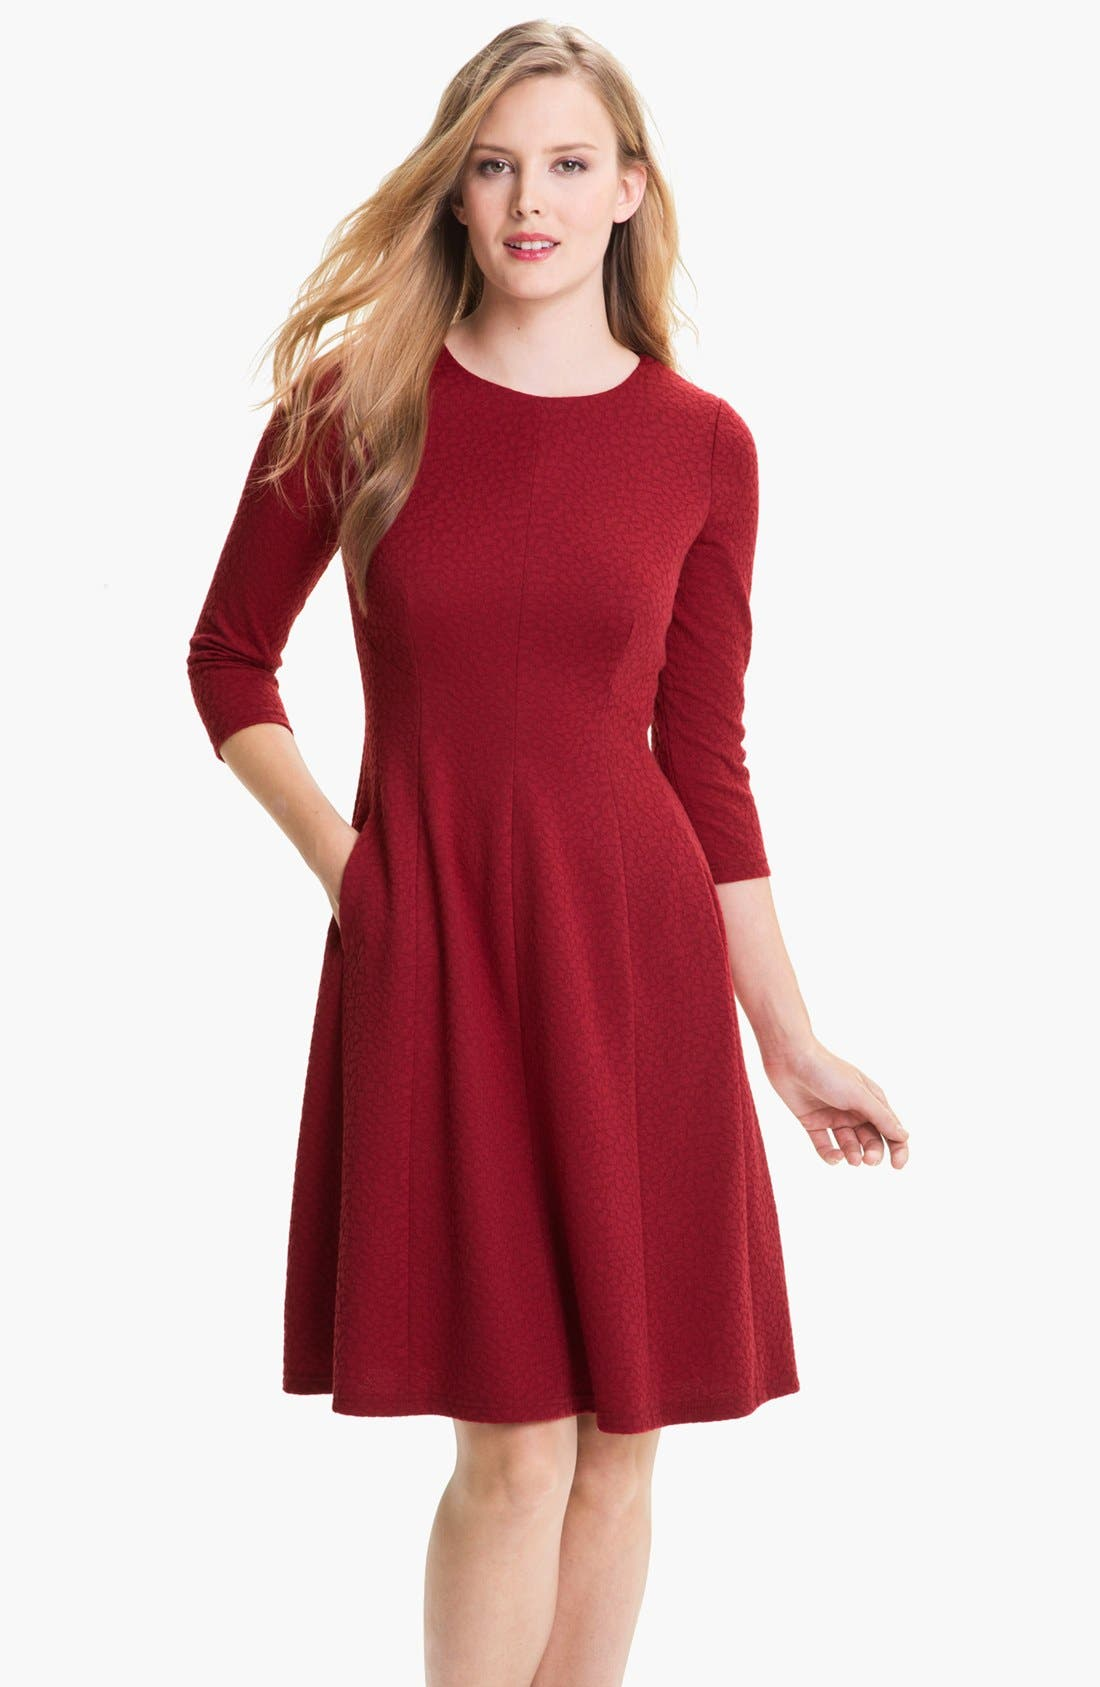 Main Image - Adrianna Papell Textured Ponte Fit & Flare Dress (Petite)